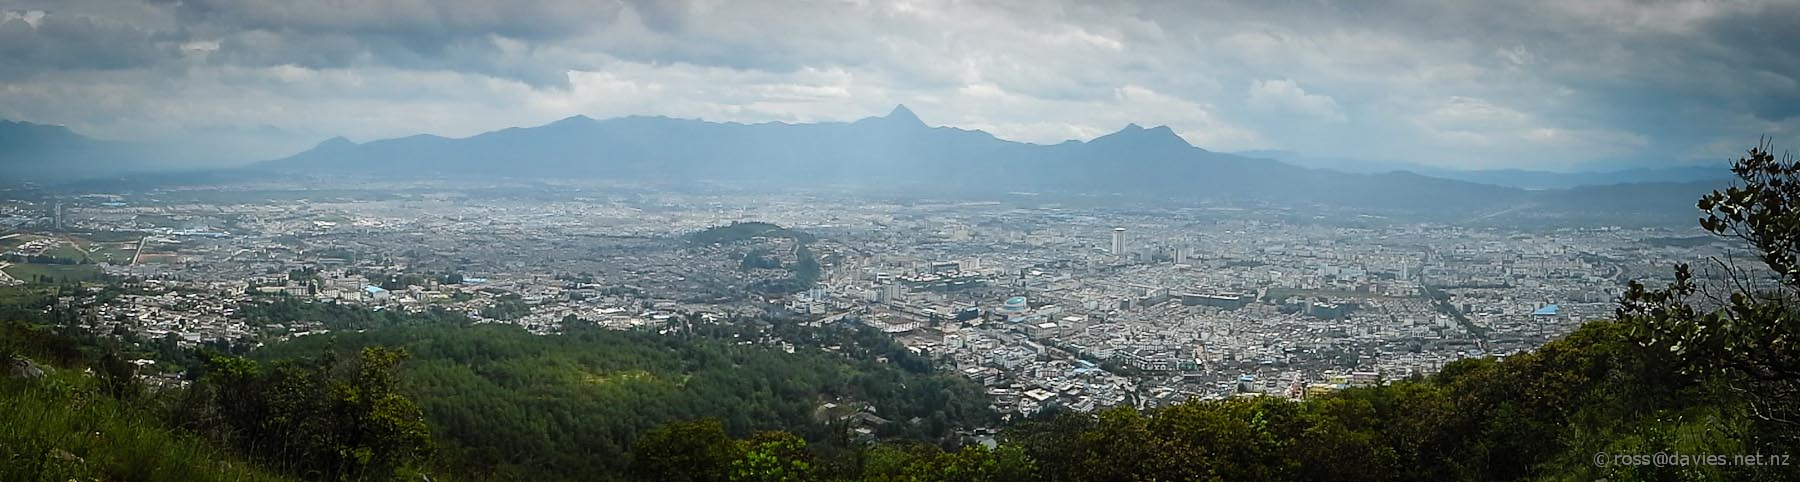 Lijiang Old Town and city from Elephant Hill